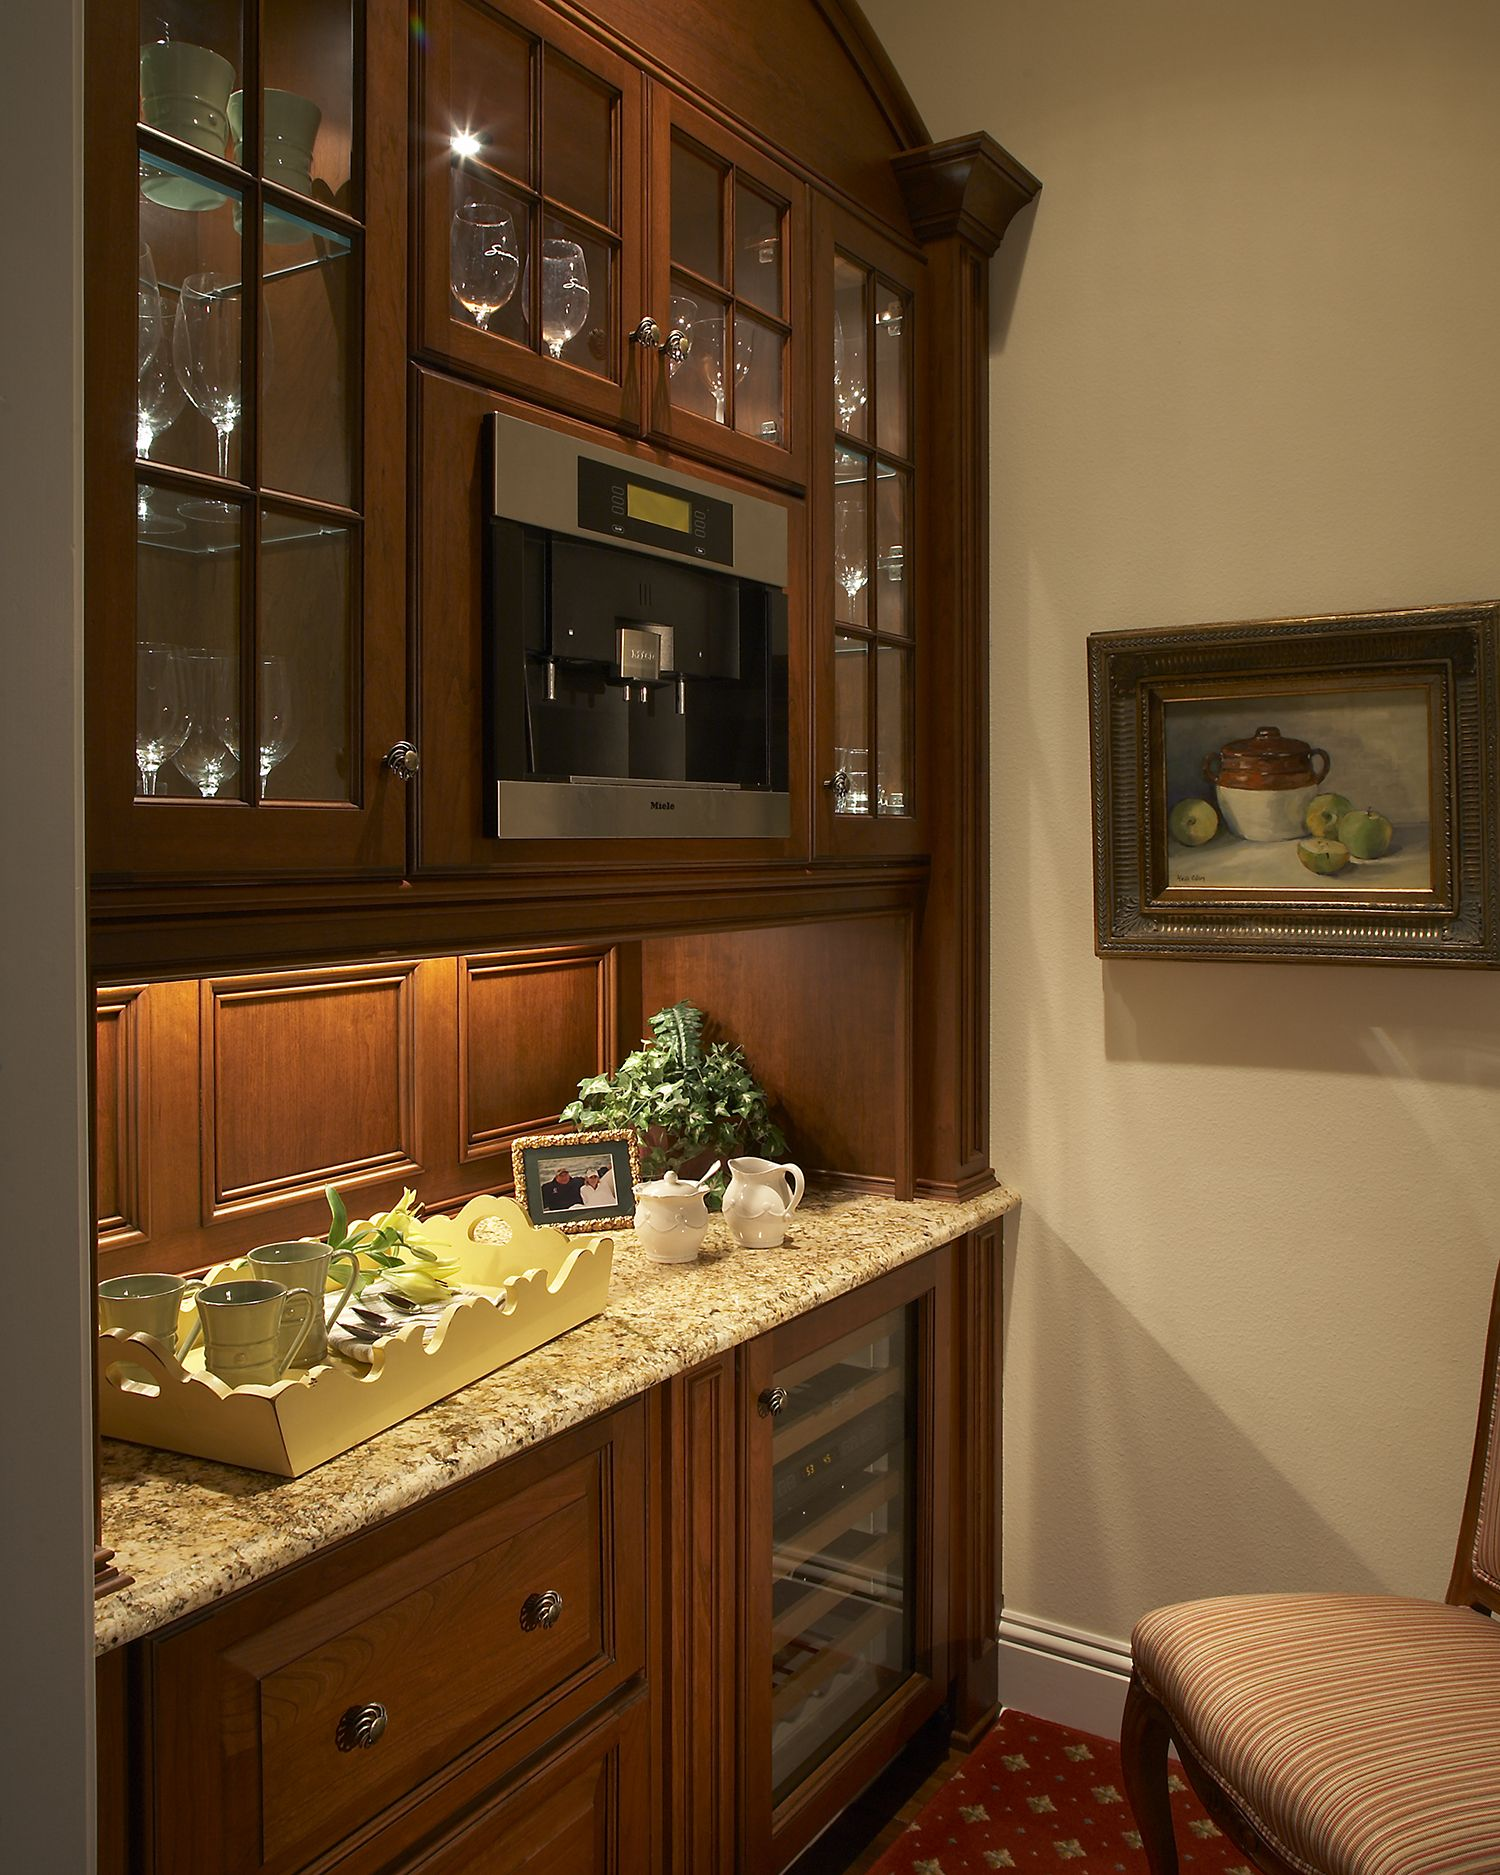 Whether fancy or informal, this space offers a busy family many options, from butler's pantry to morning breakfast bar.